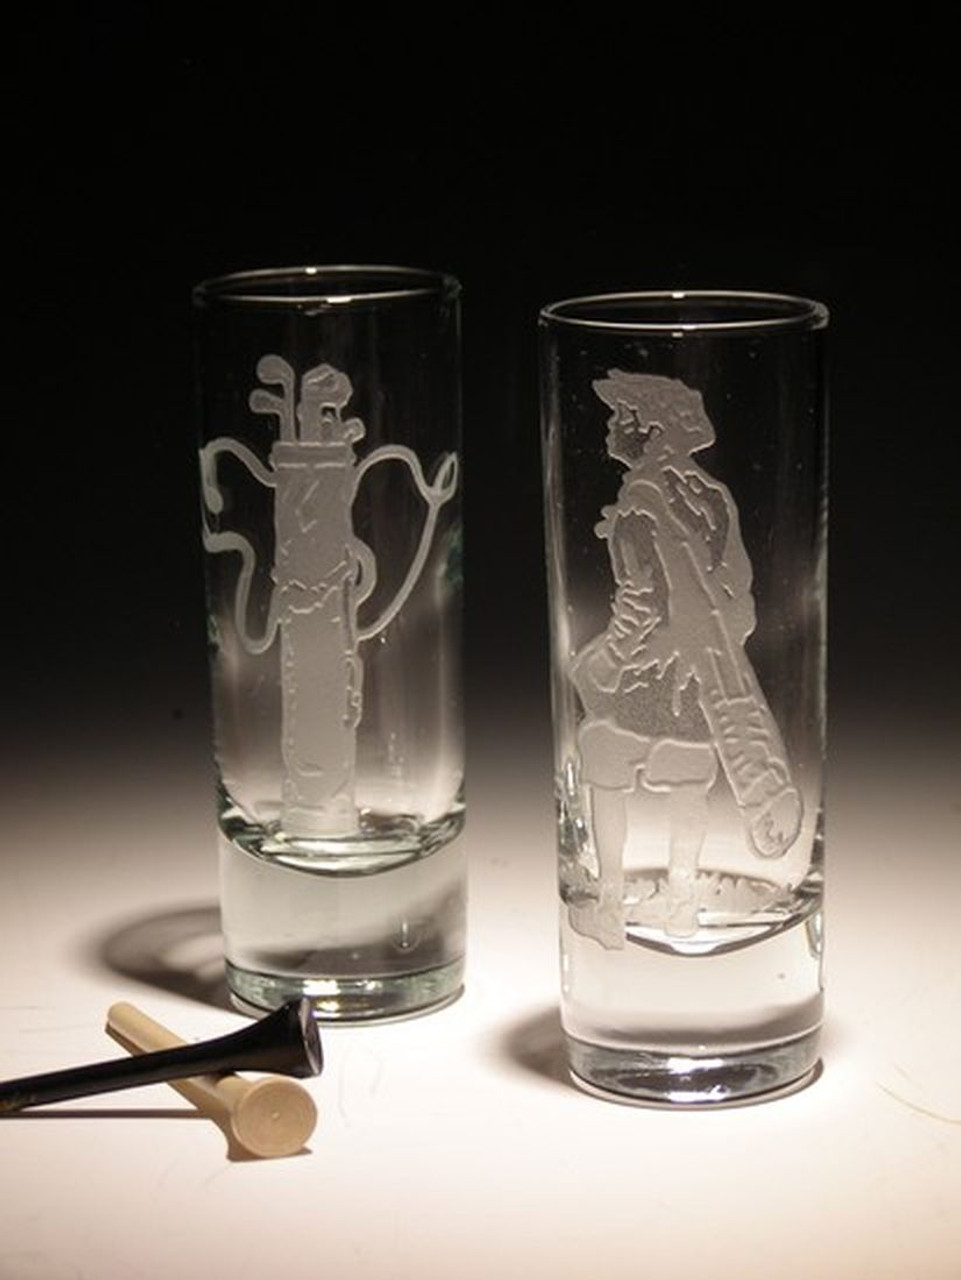 Hand Carved  Crystal Cordial / Shot Glasses - 2oz - Set of 2 - Personalized